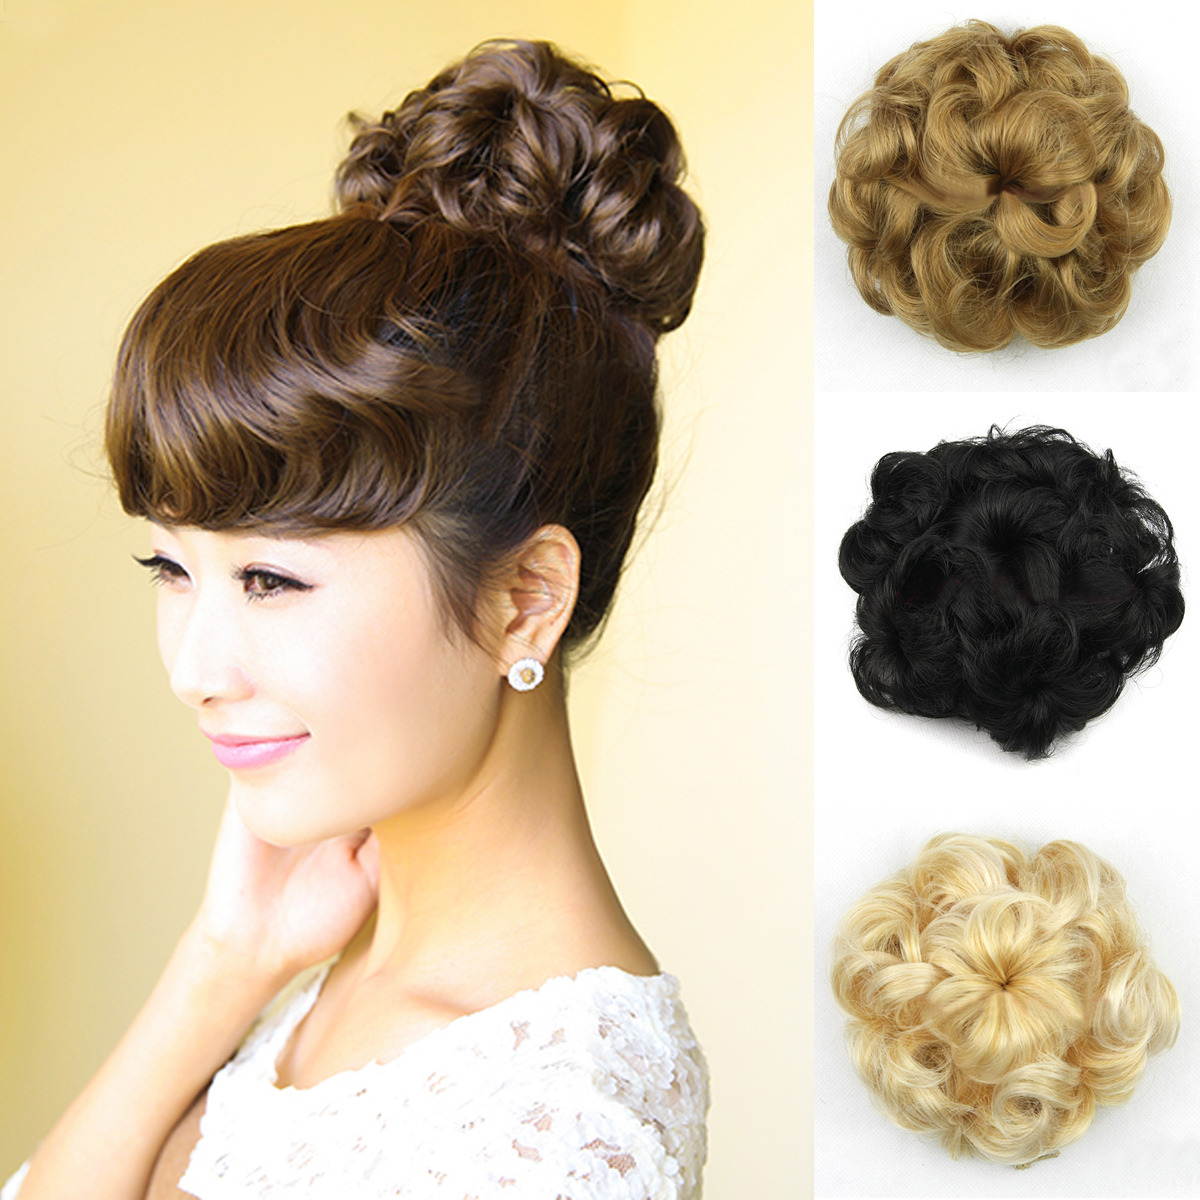 Curly Bun Hair Pieces Curly Short Hair Bun Piece